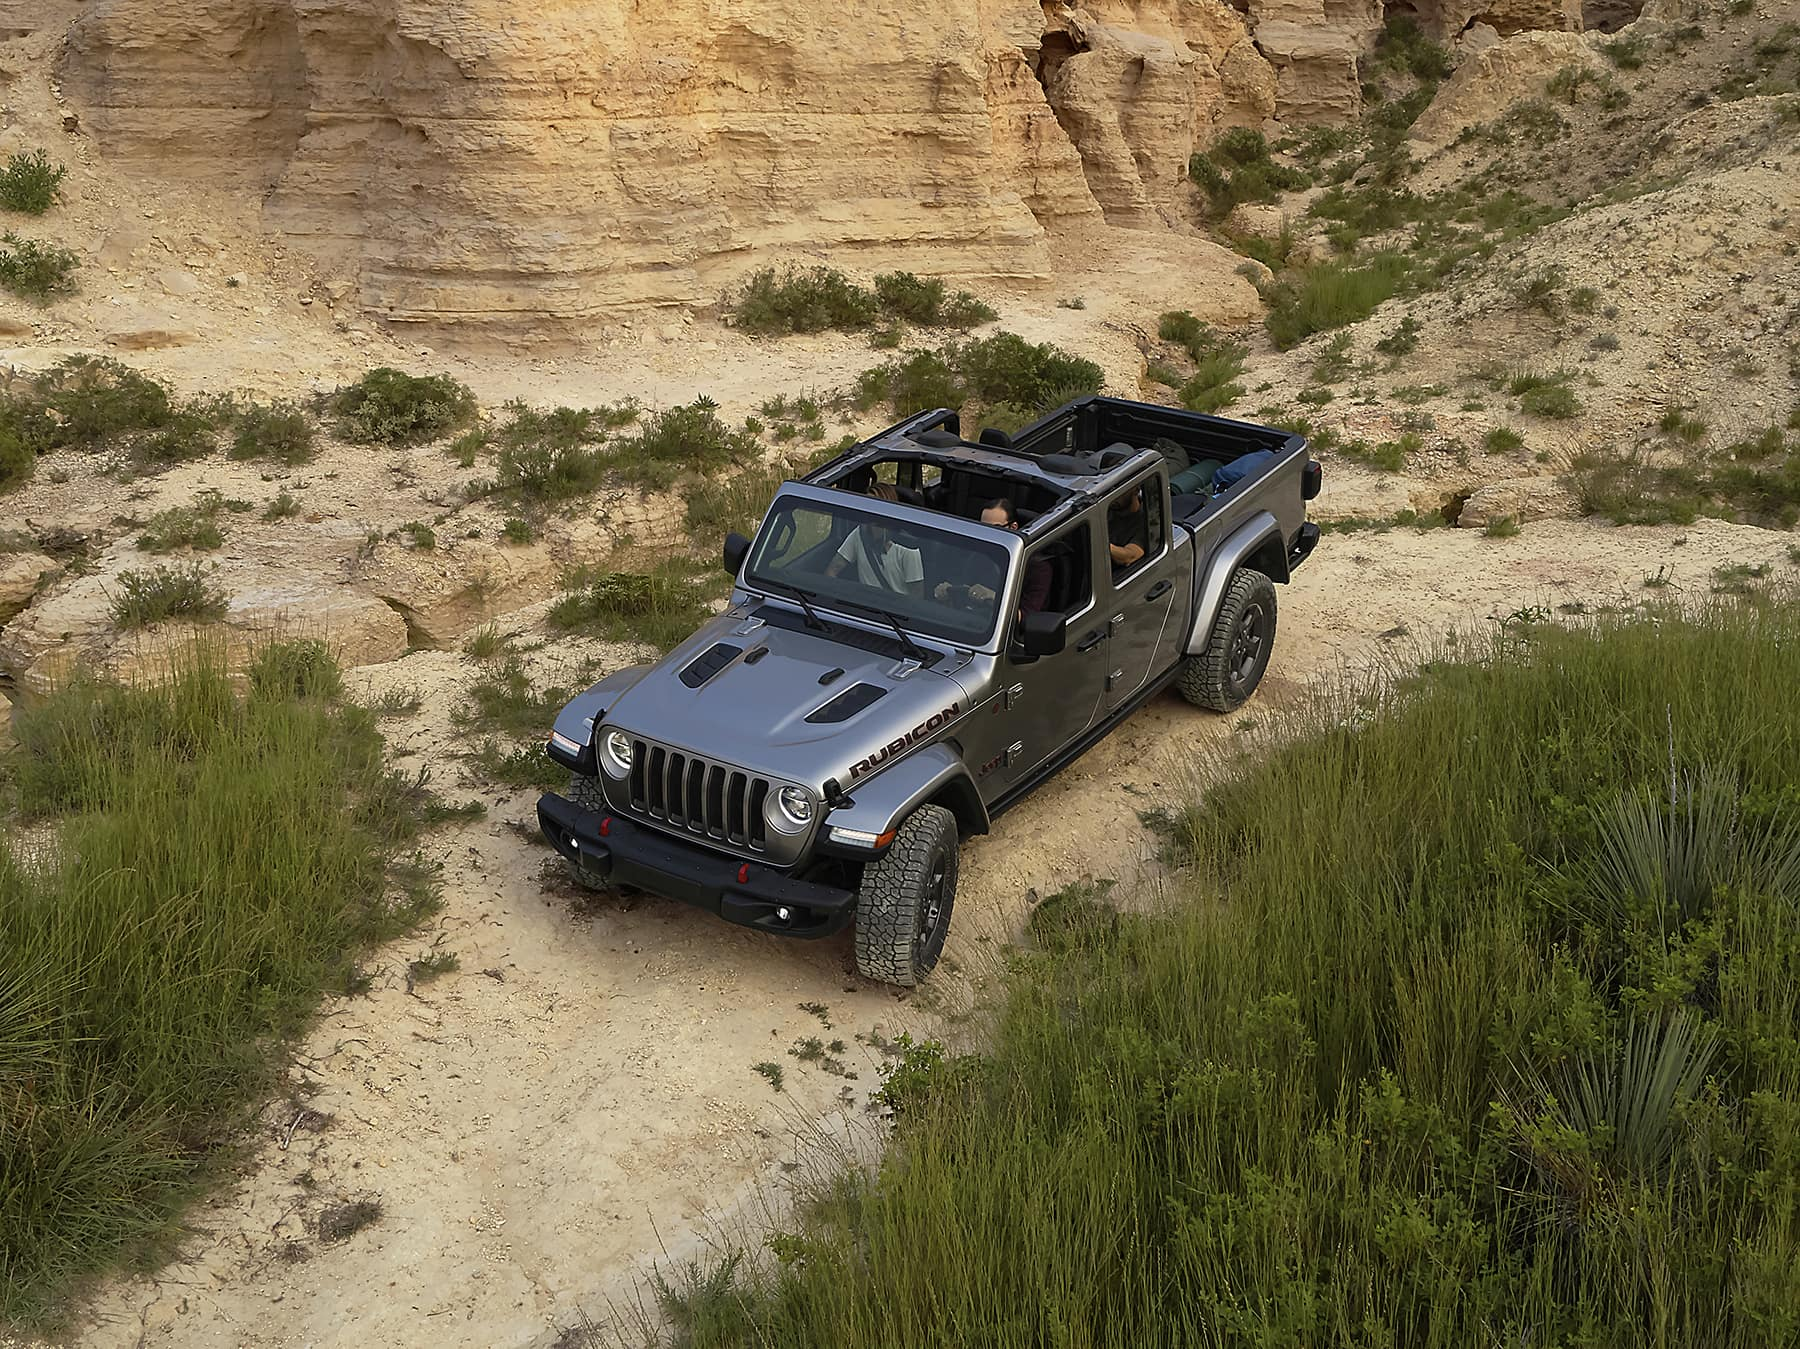 2020 Jeep Gladiator Rubicon going down hill